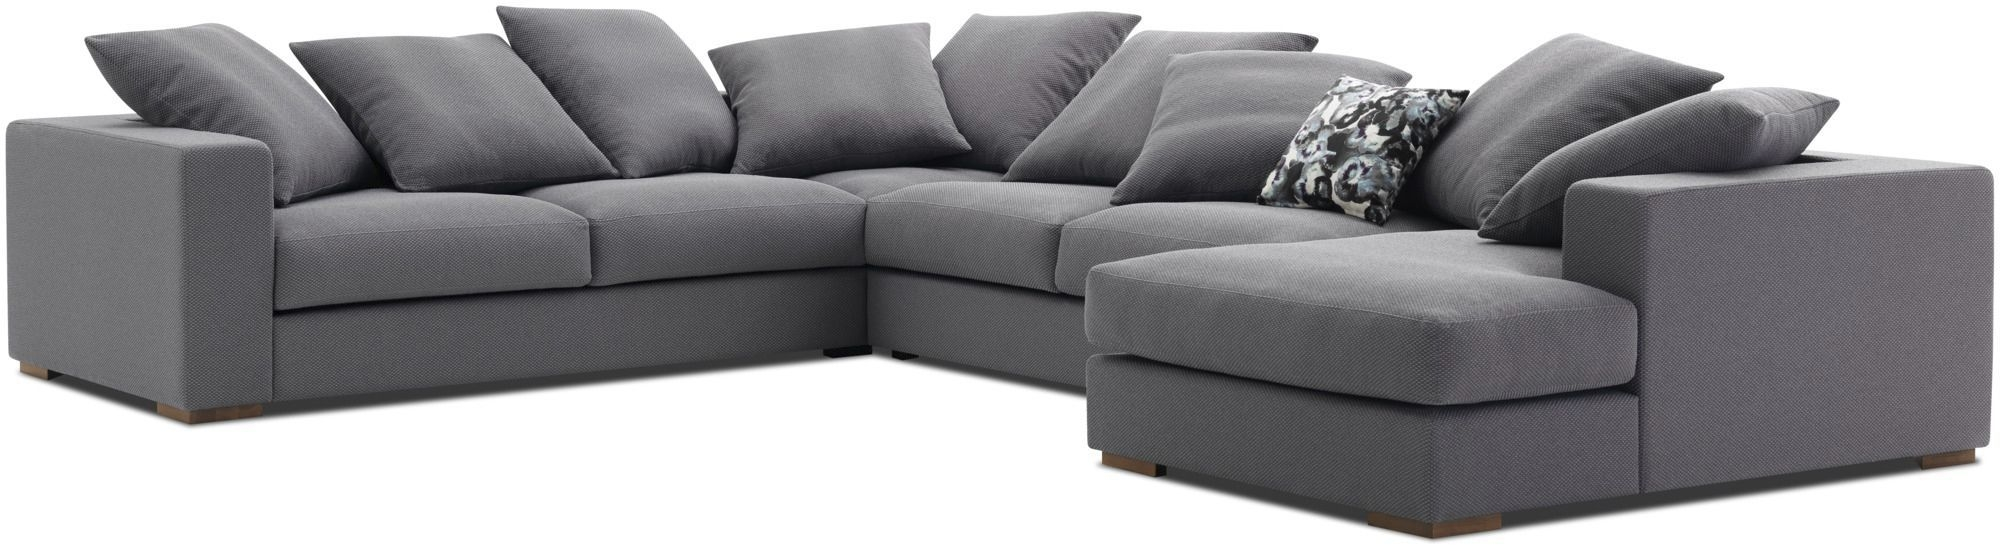 Corner Sofa Modular Contemporary Leather Cenova Boconcept Inside Modular Corner Sofas (Photo 3 of 15)